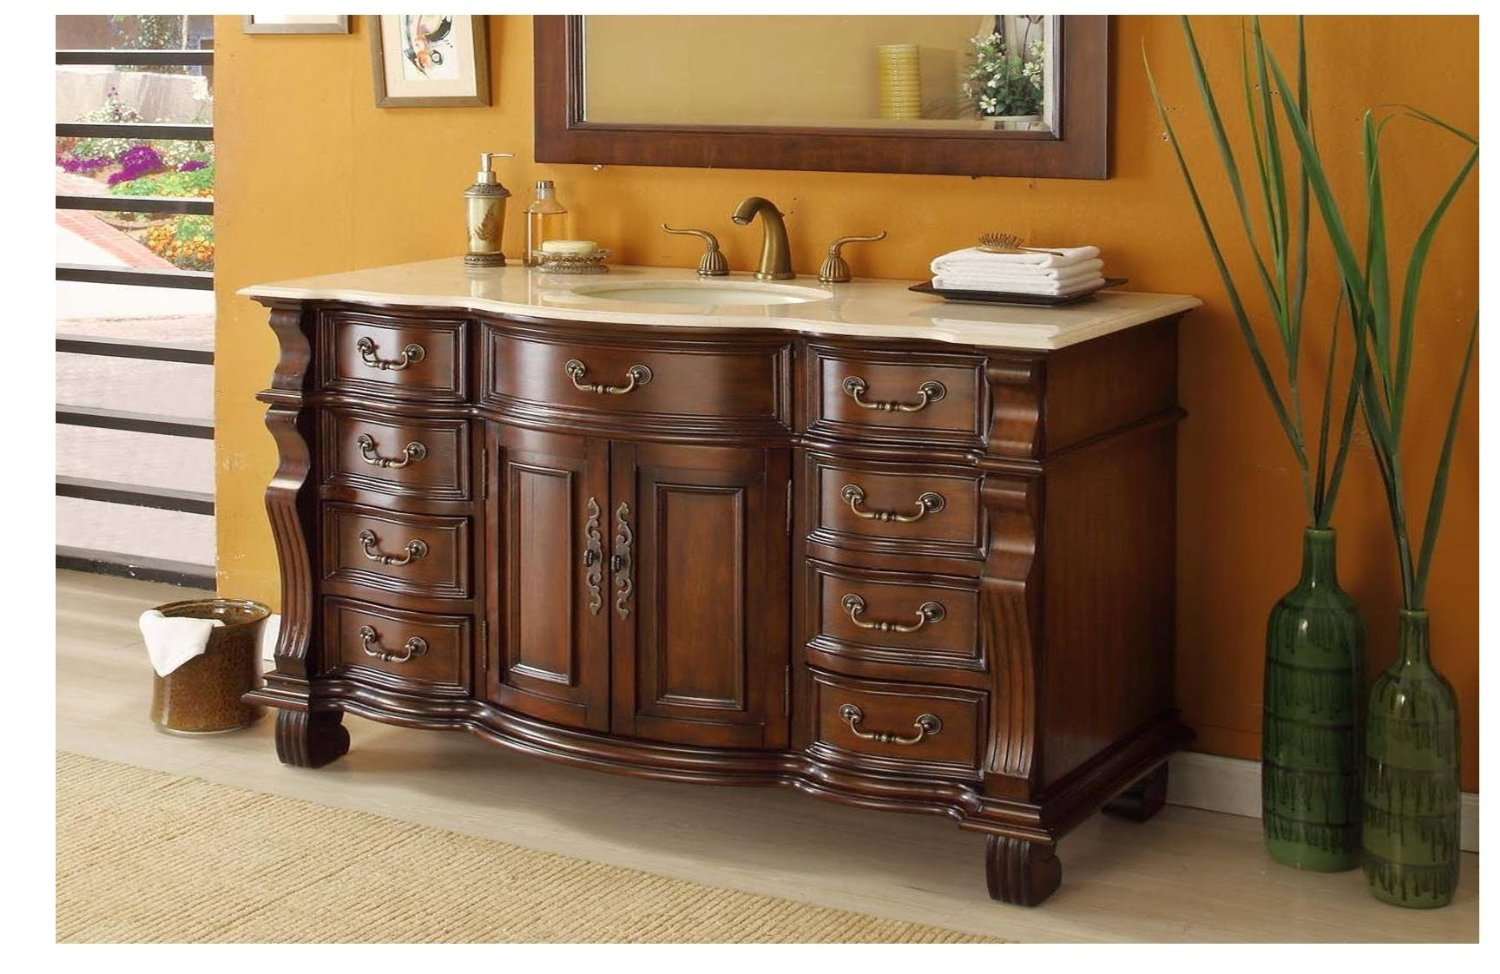 adelina 60 inch antique style bathroom vanity cream marble top - 60 Bathroom Vanity